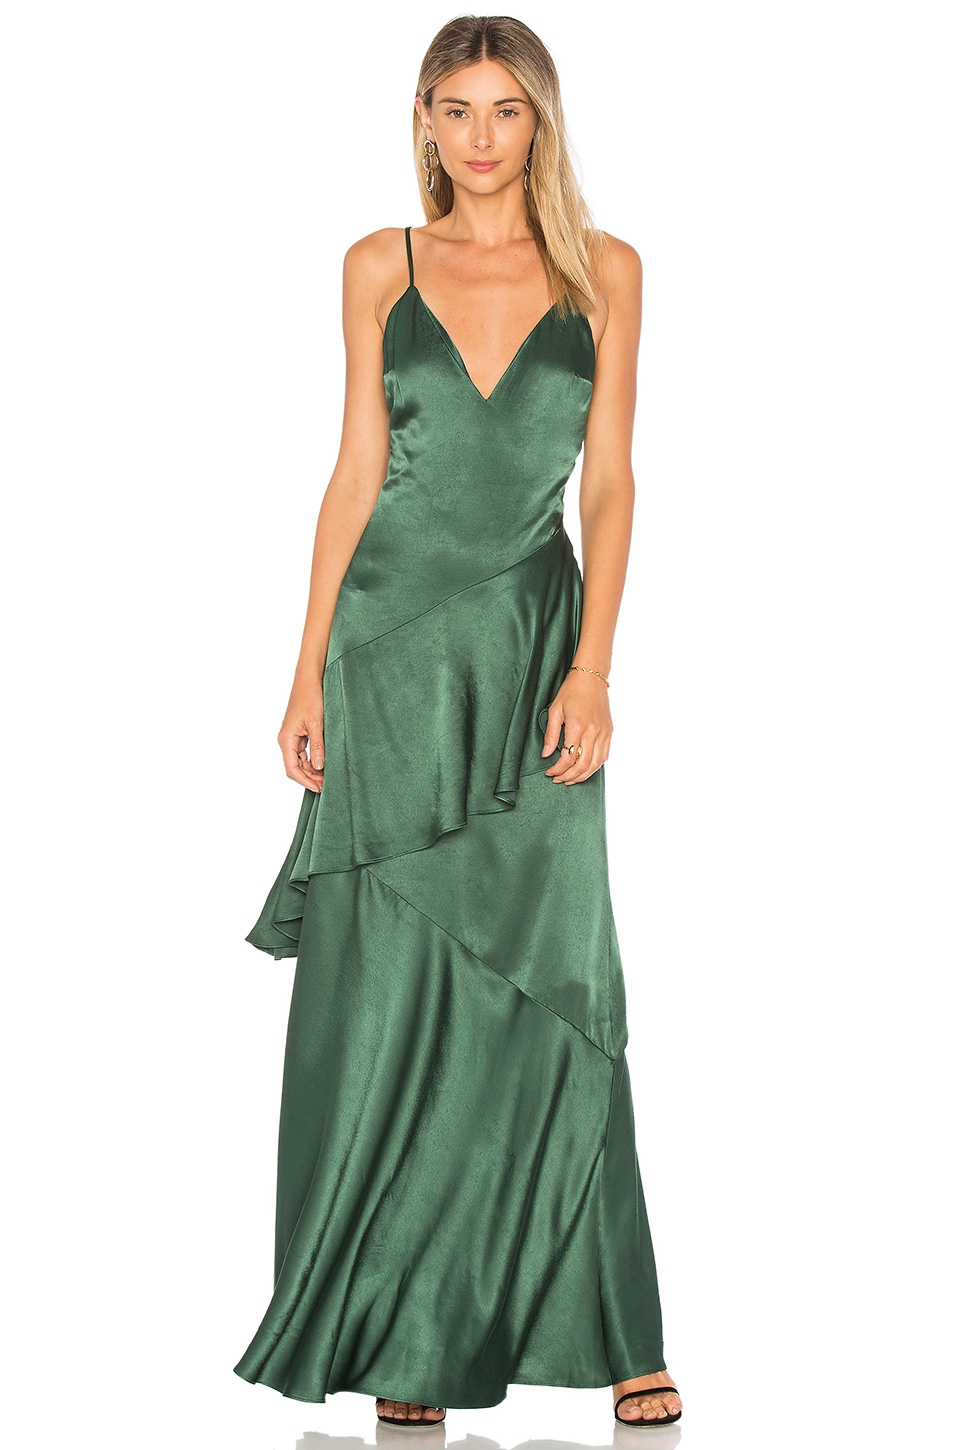 Lovers + Friends Coralie Dress in Emerald